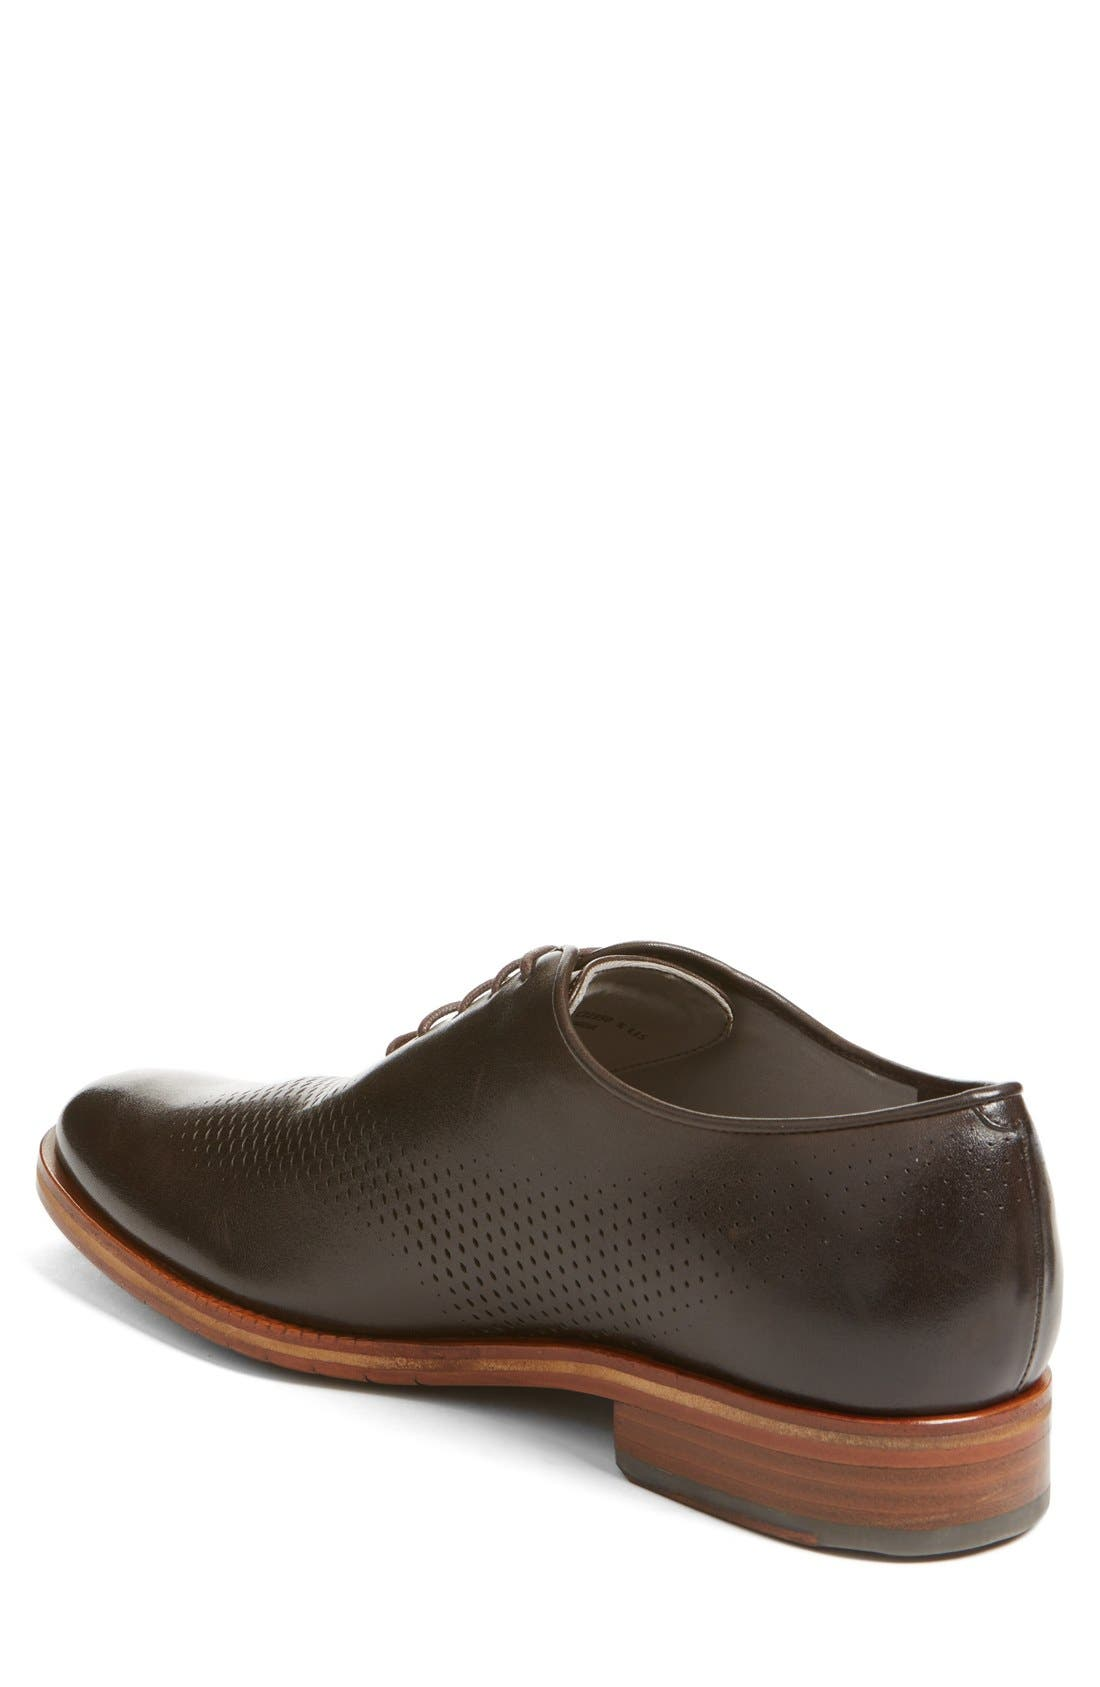 Alternate Image 2  - Cole Haan 'Washington' Plain Toe Oxford (Men)